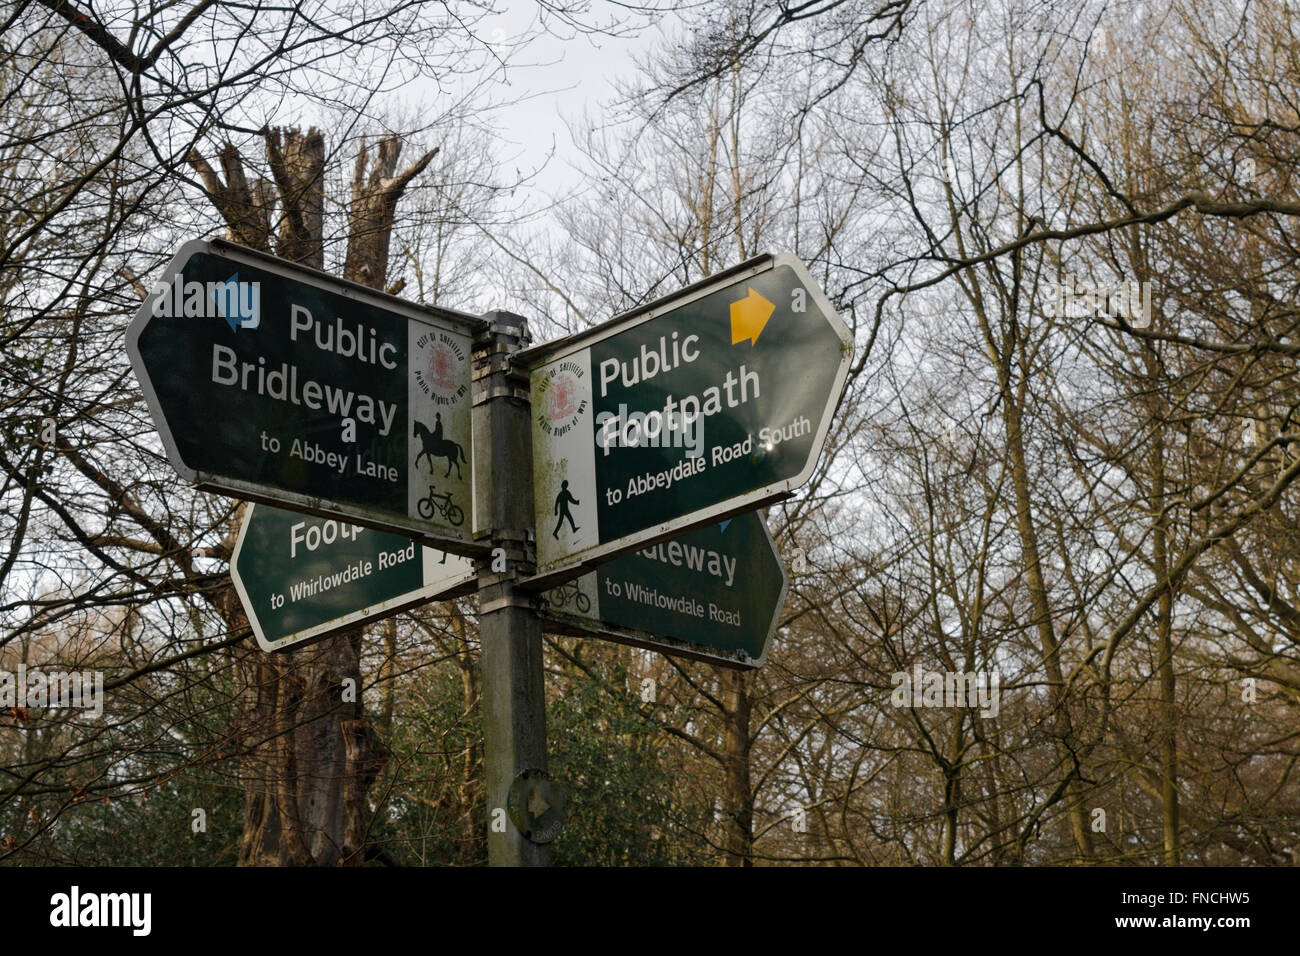 Public footpaths signs Ecclesall Woods Sheffield - Stock Image